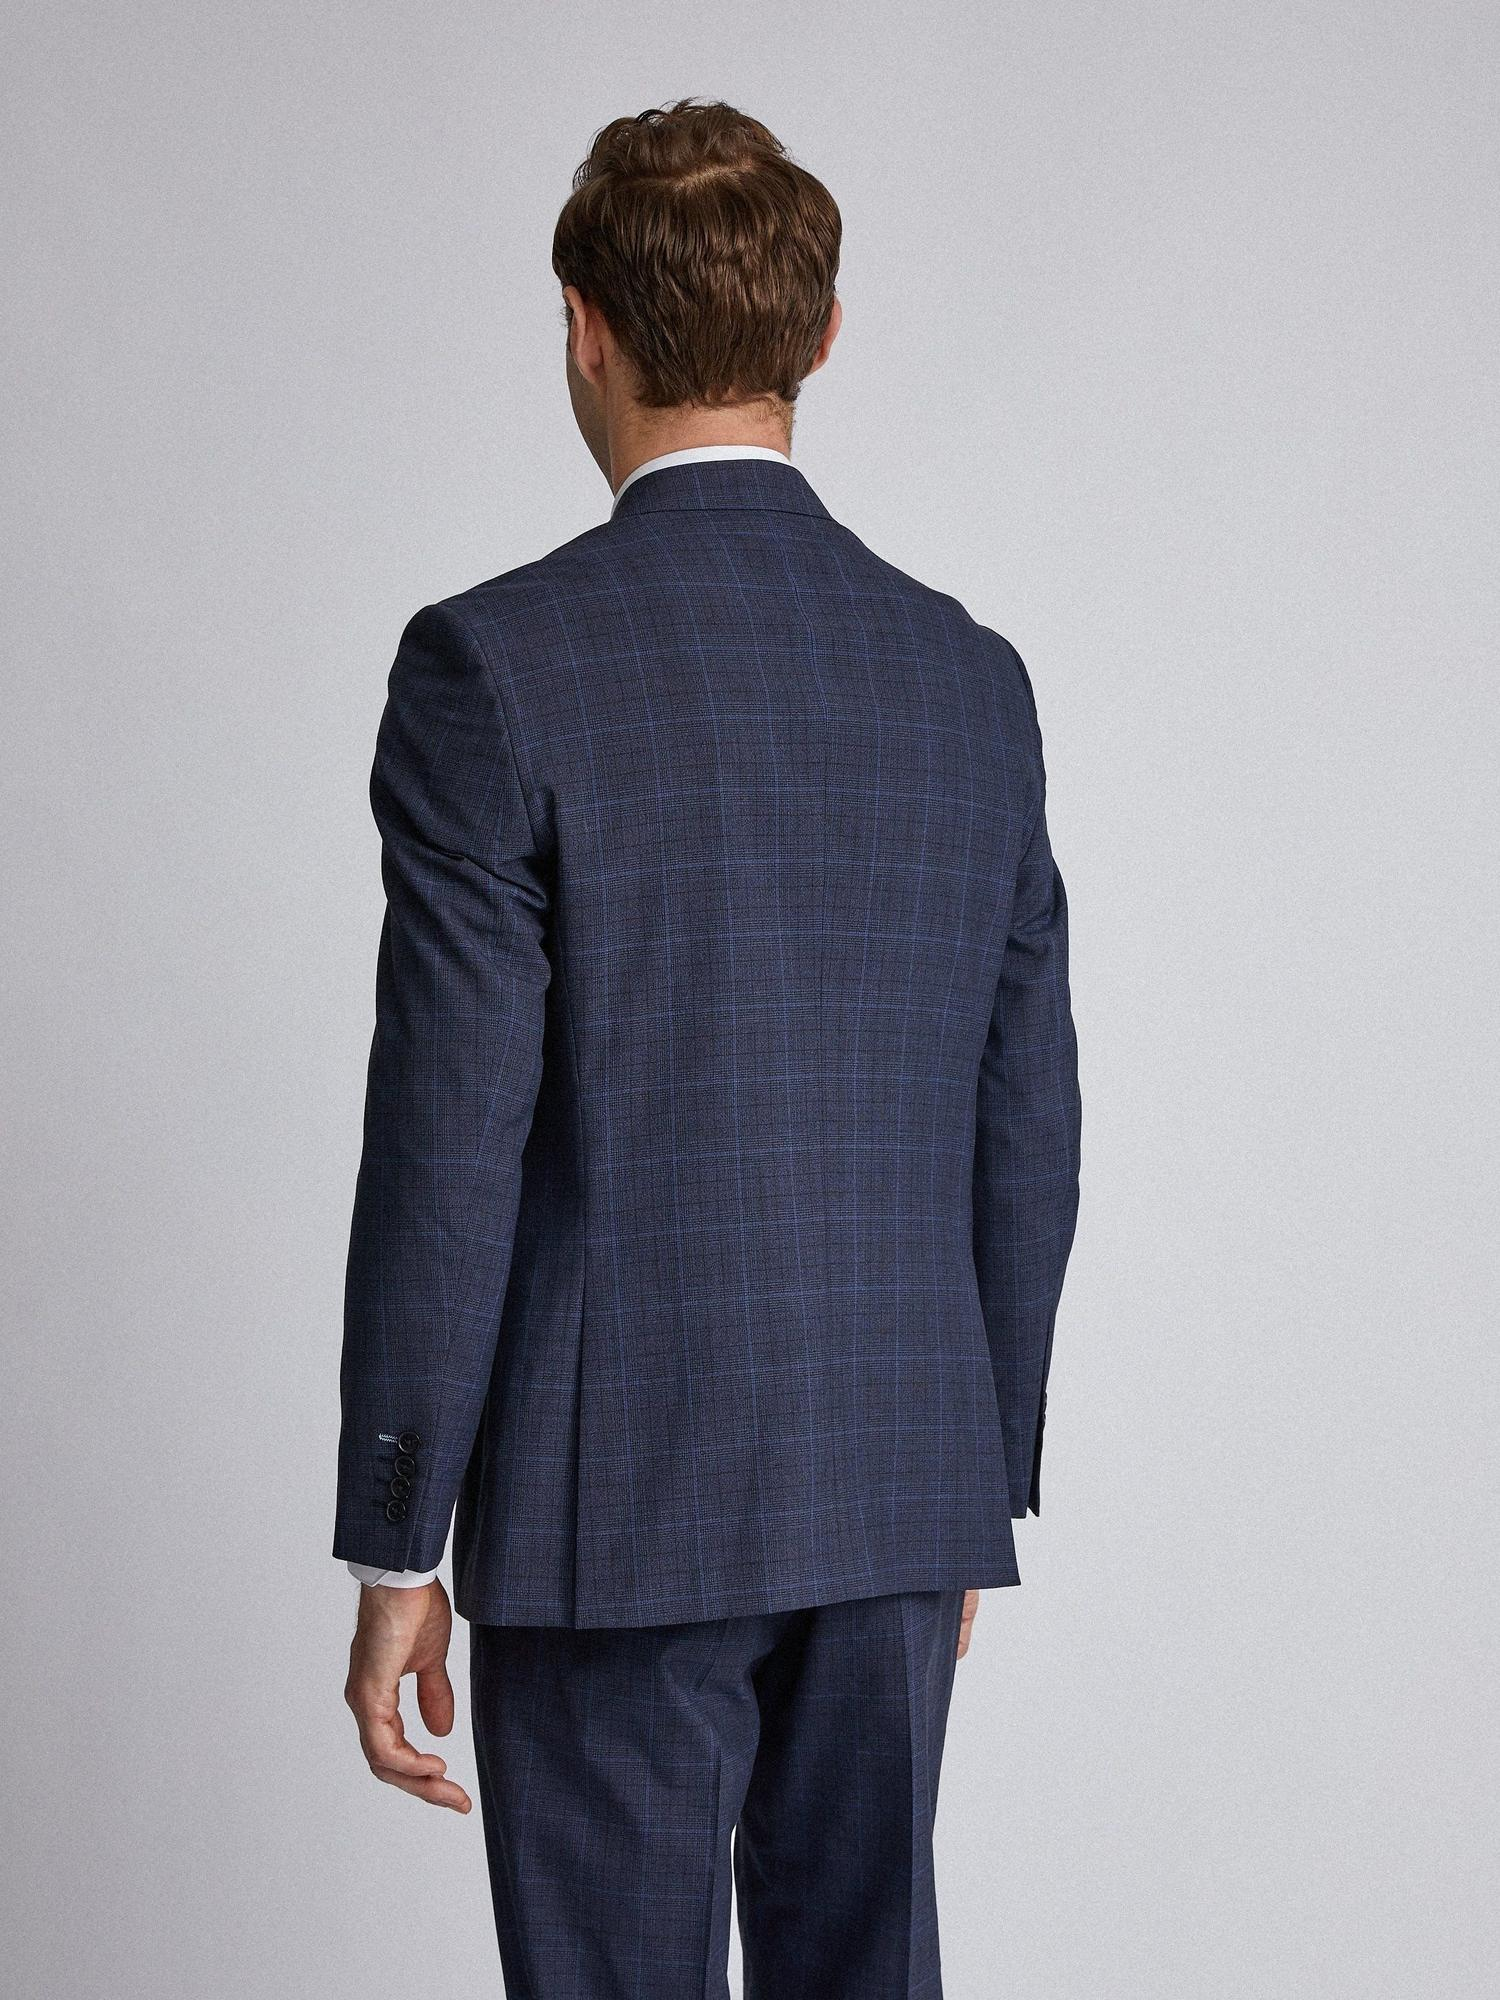 148 Navy Tonal Check Tailored Fit Suit Jacket image number 3